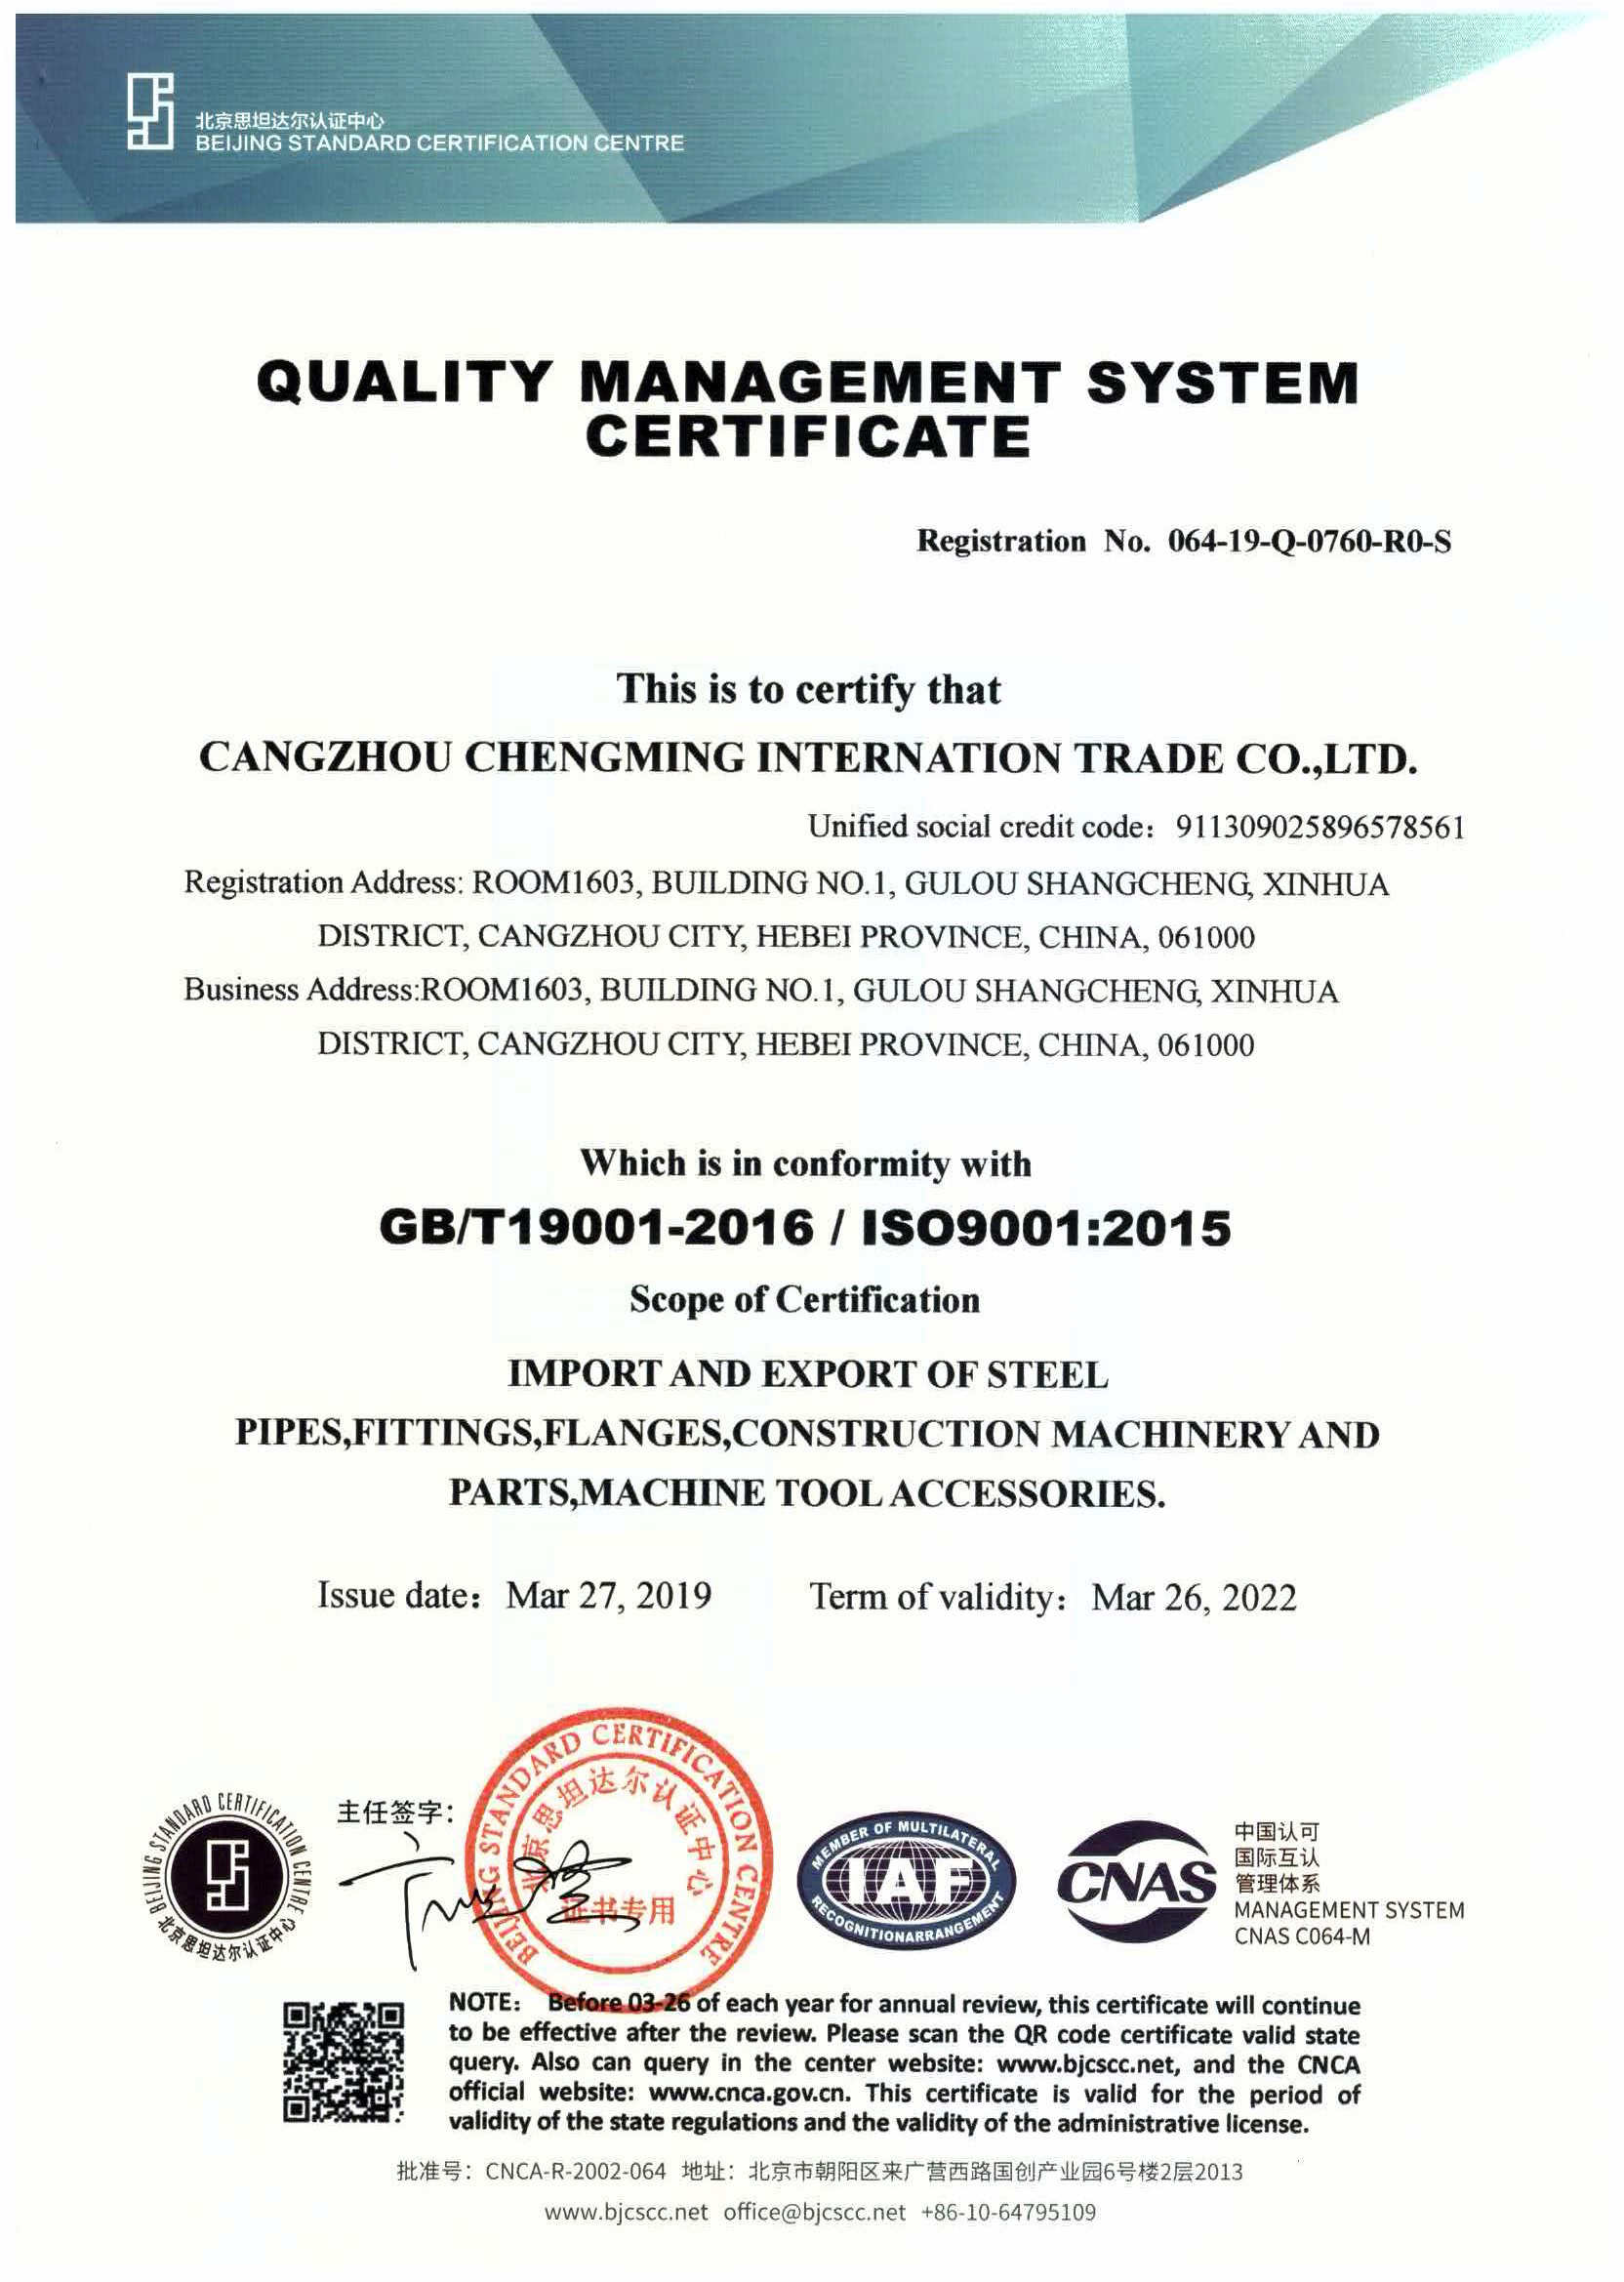 CHM-ISO-for-carbon-steel-pipe-fitting-and-flange